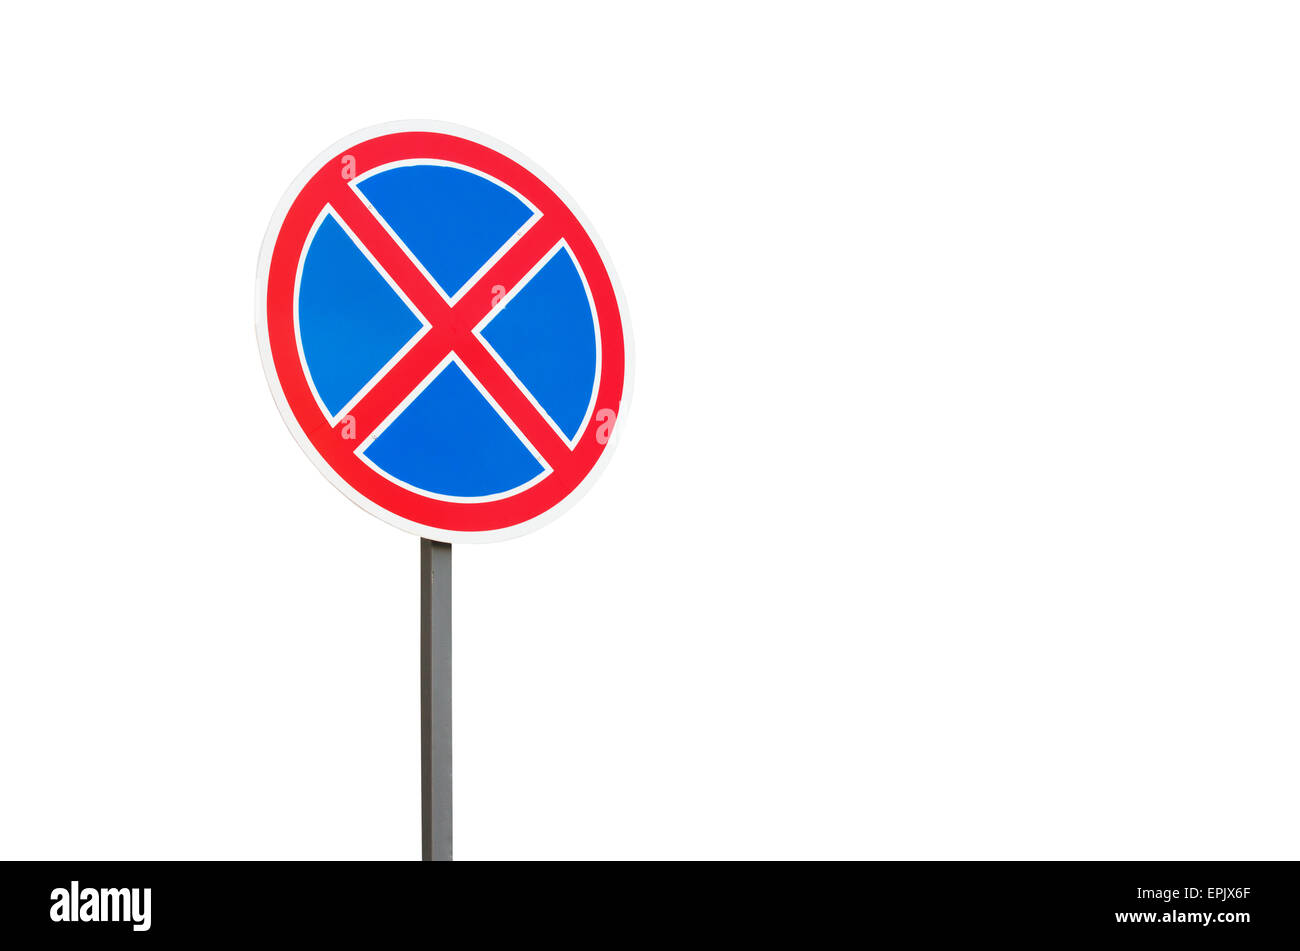 Road sign parking stop. Isolated object. - Stock Image